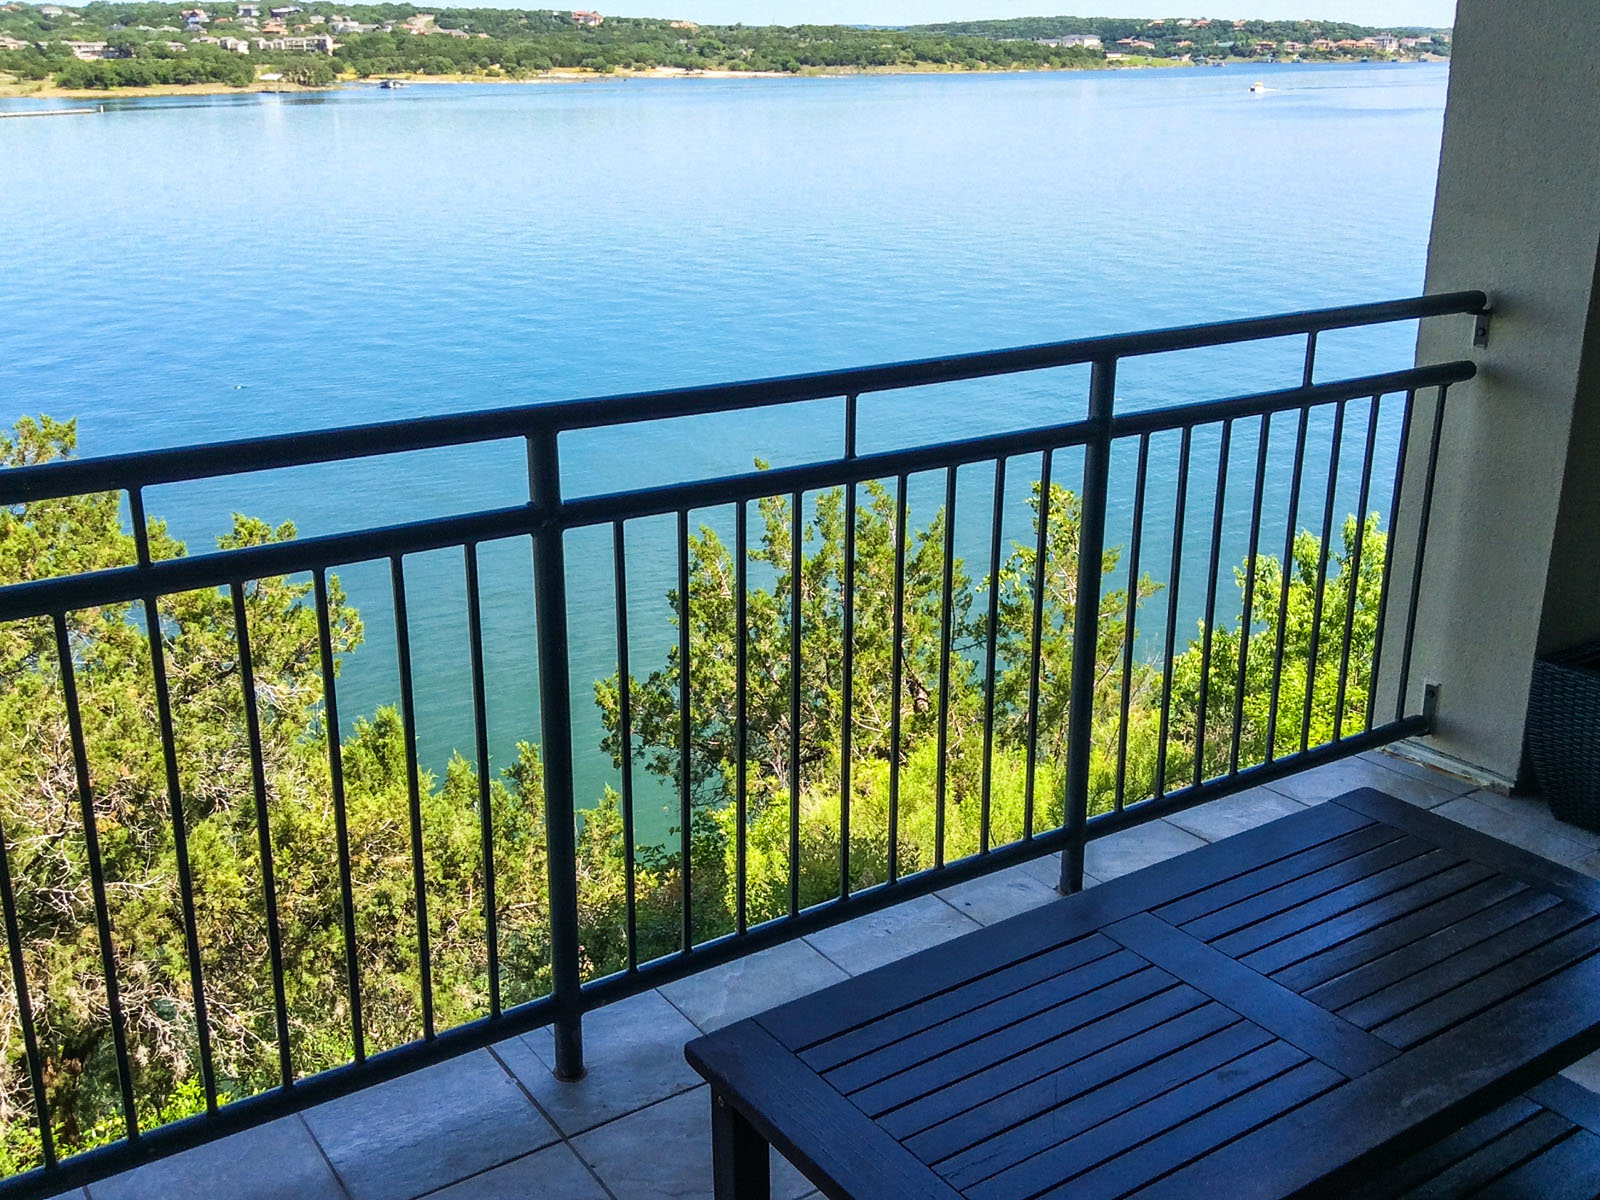 Additional photo for property listing at Overlooking Lake Travis 112 Marina Village Cv 112 Austin, Texas 78734 United States